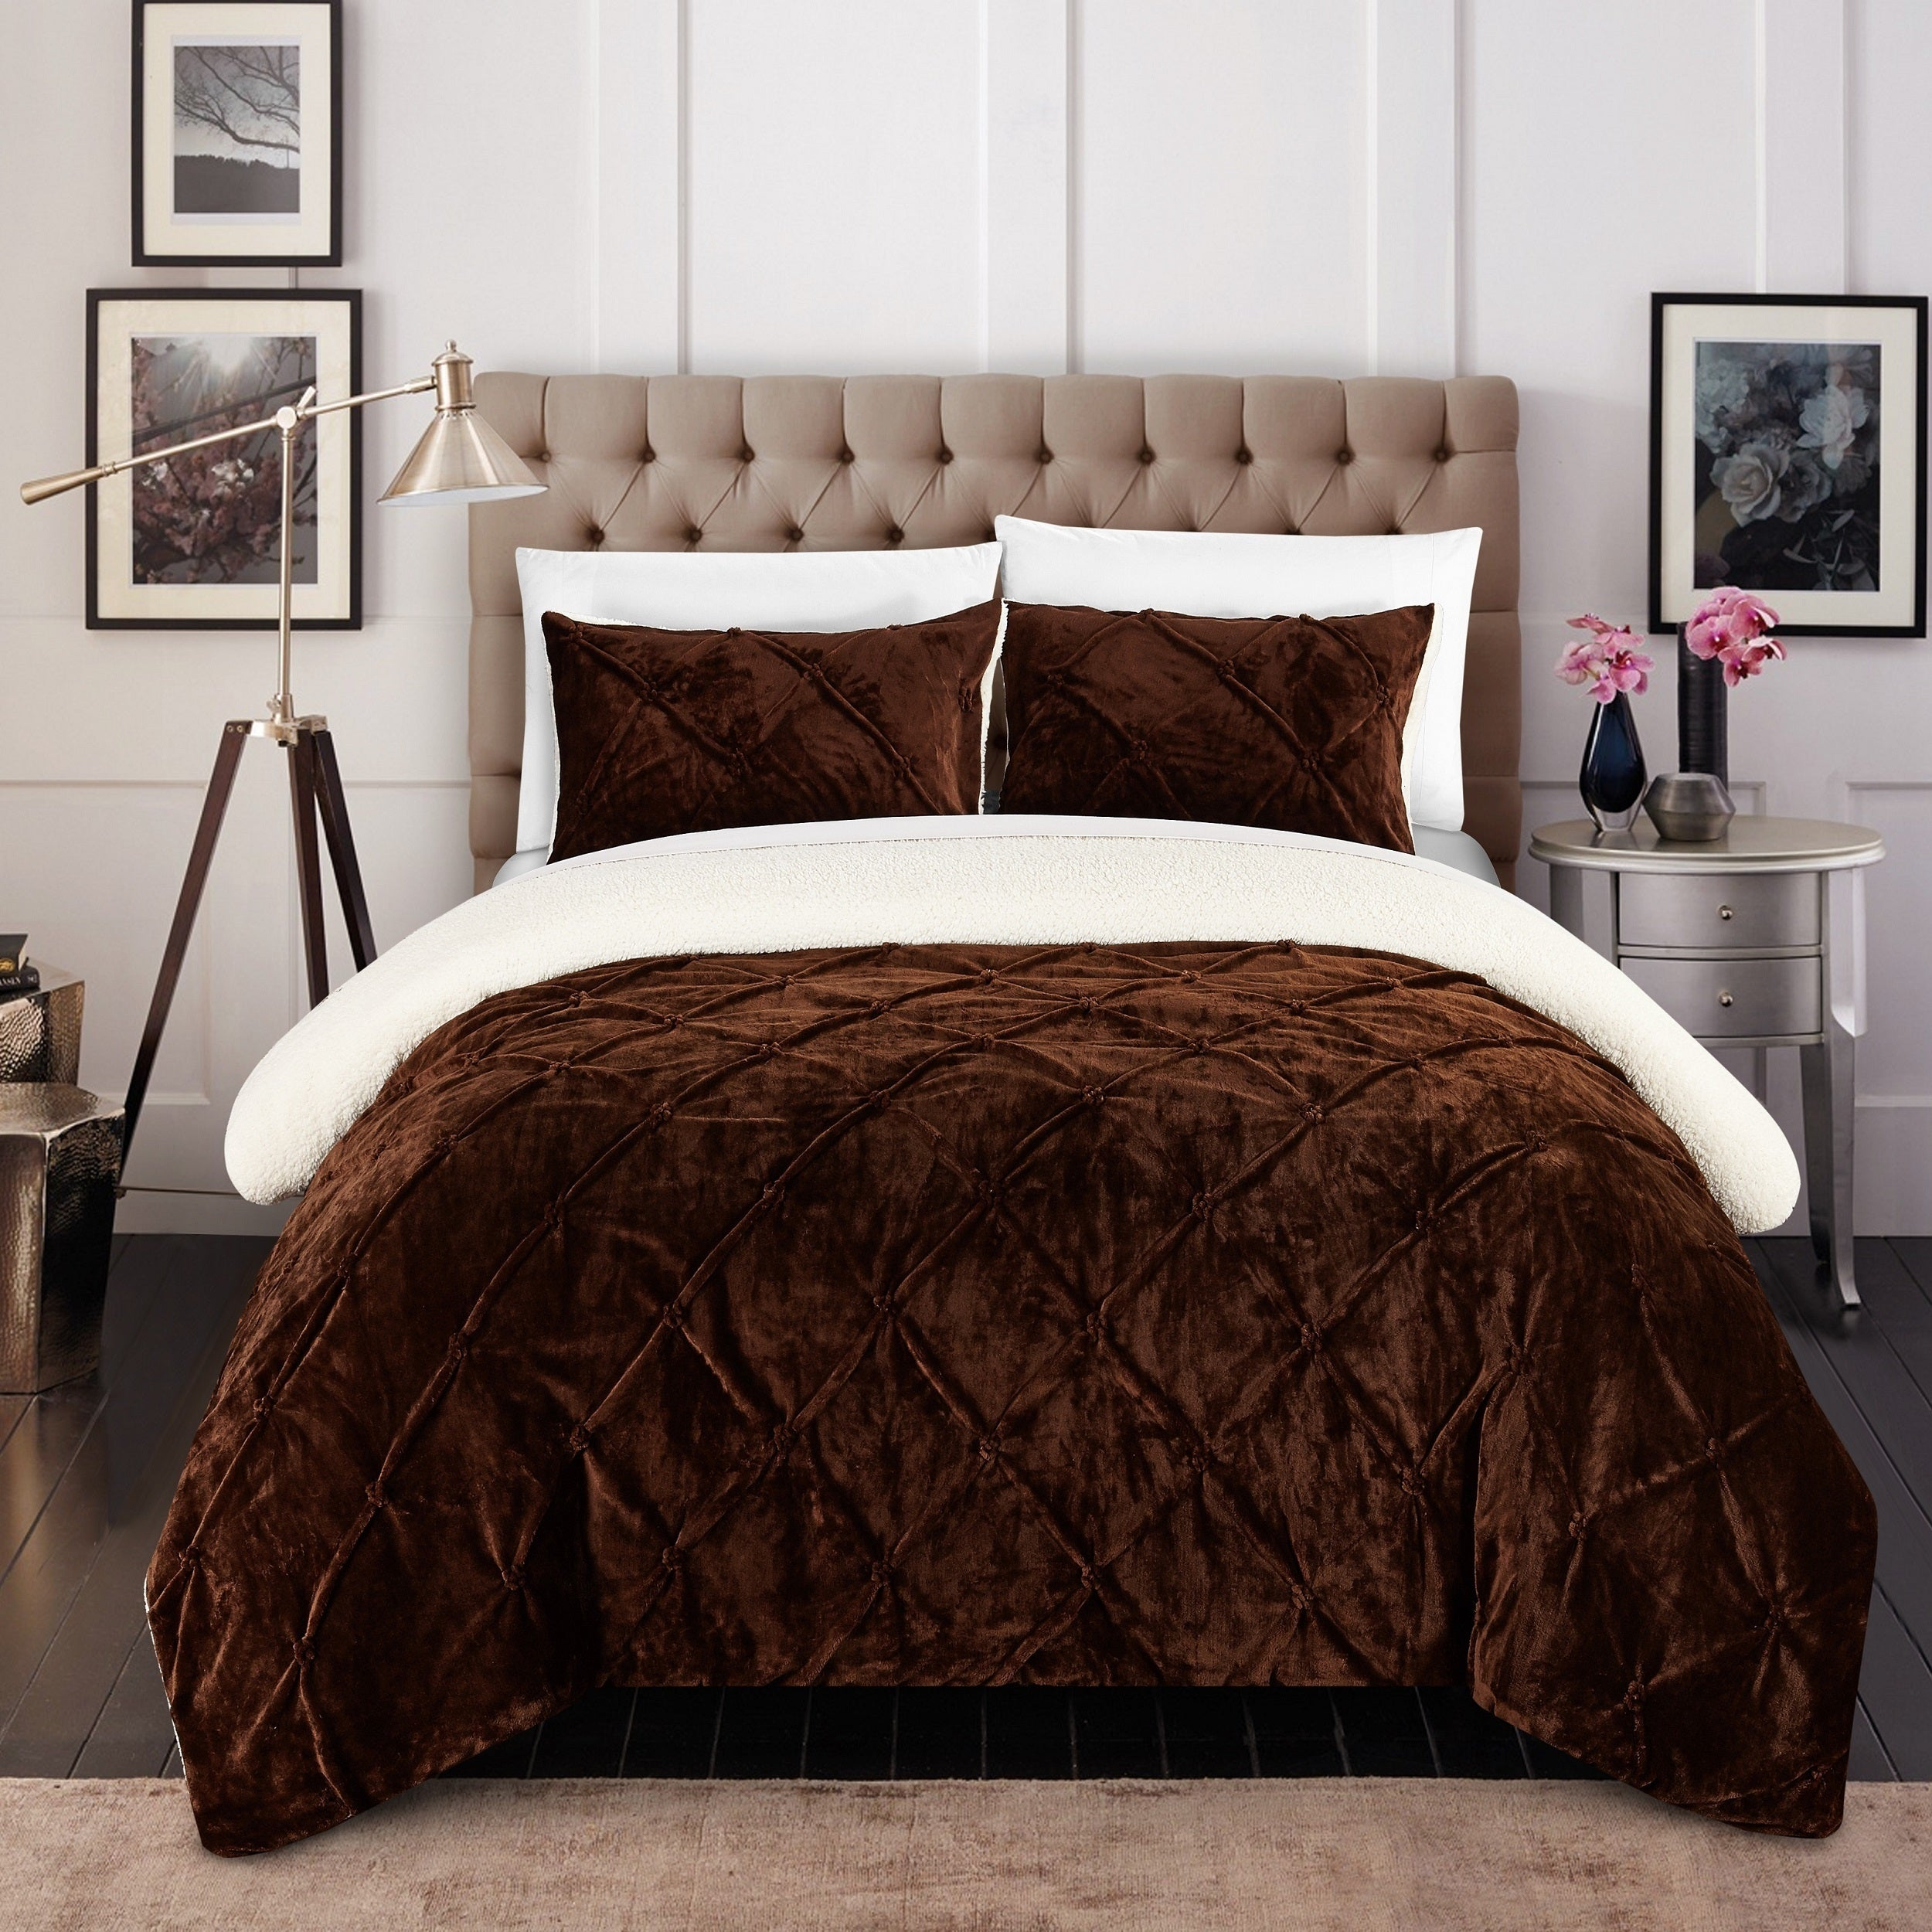 Chic Home 3 Piece Chiara Bed In A Bag Brown Comforter Set On Sale Overstock 12853216